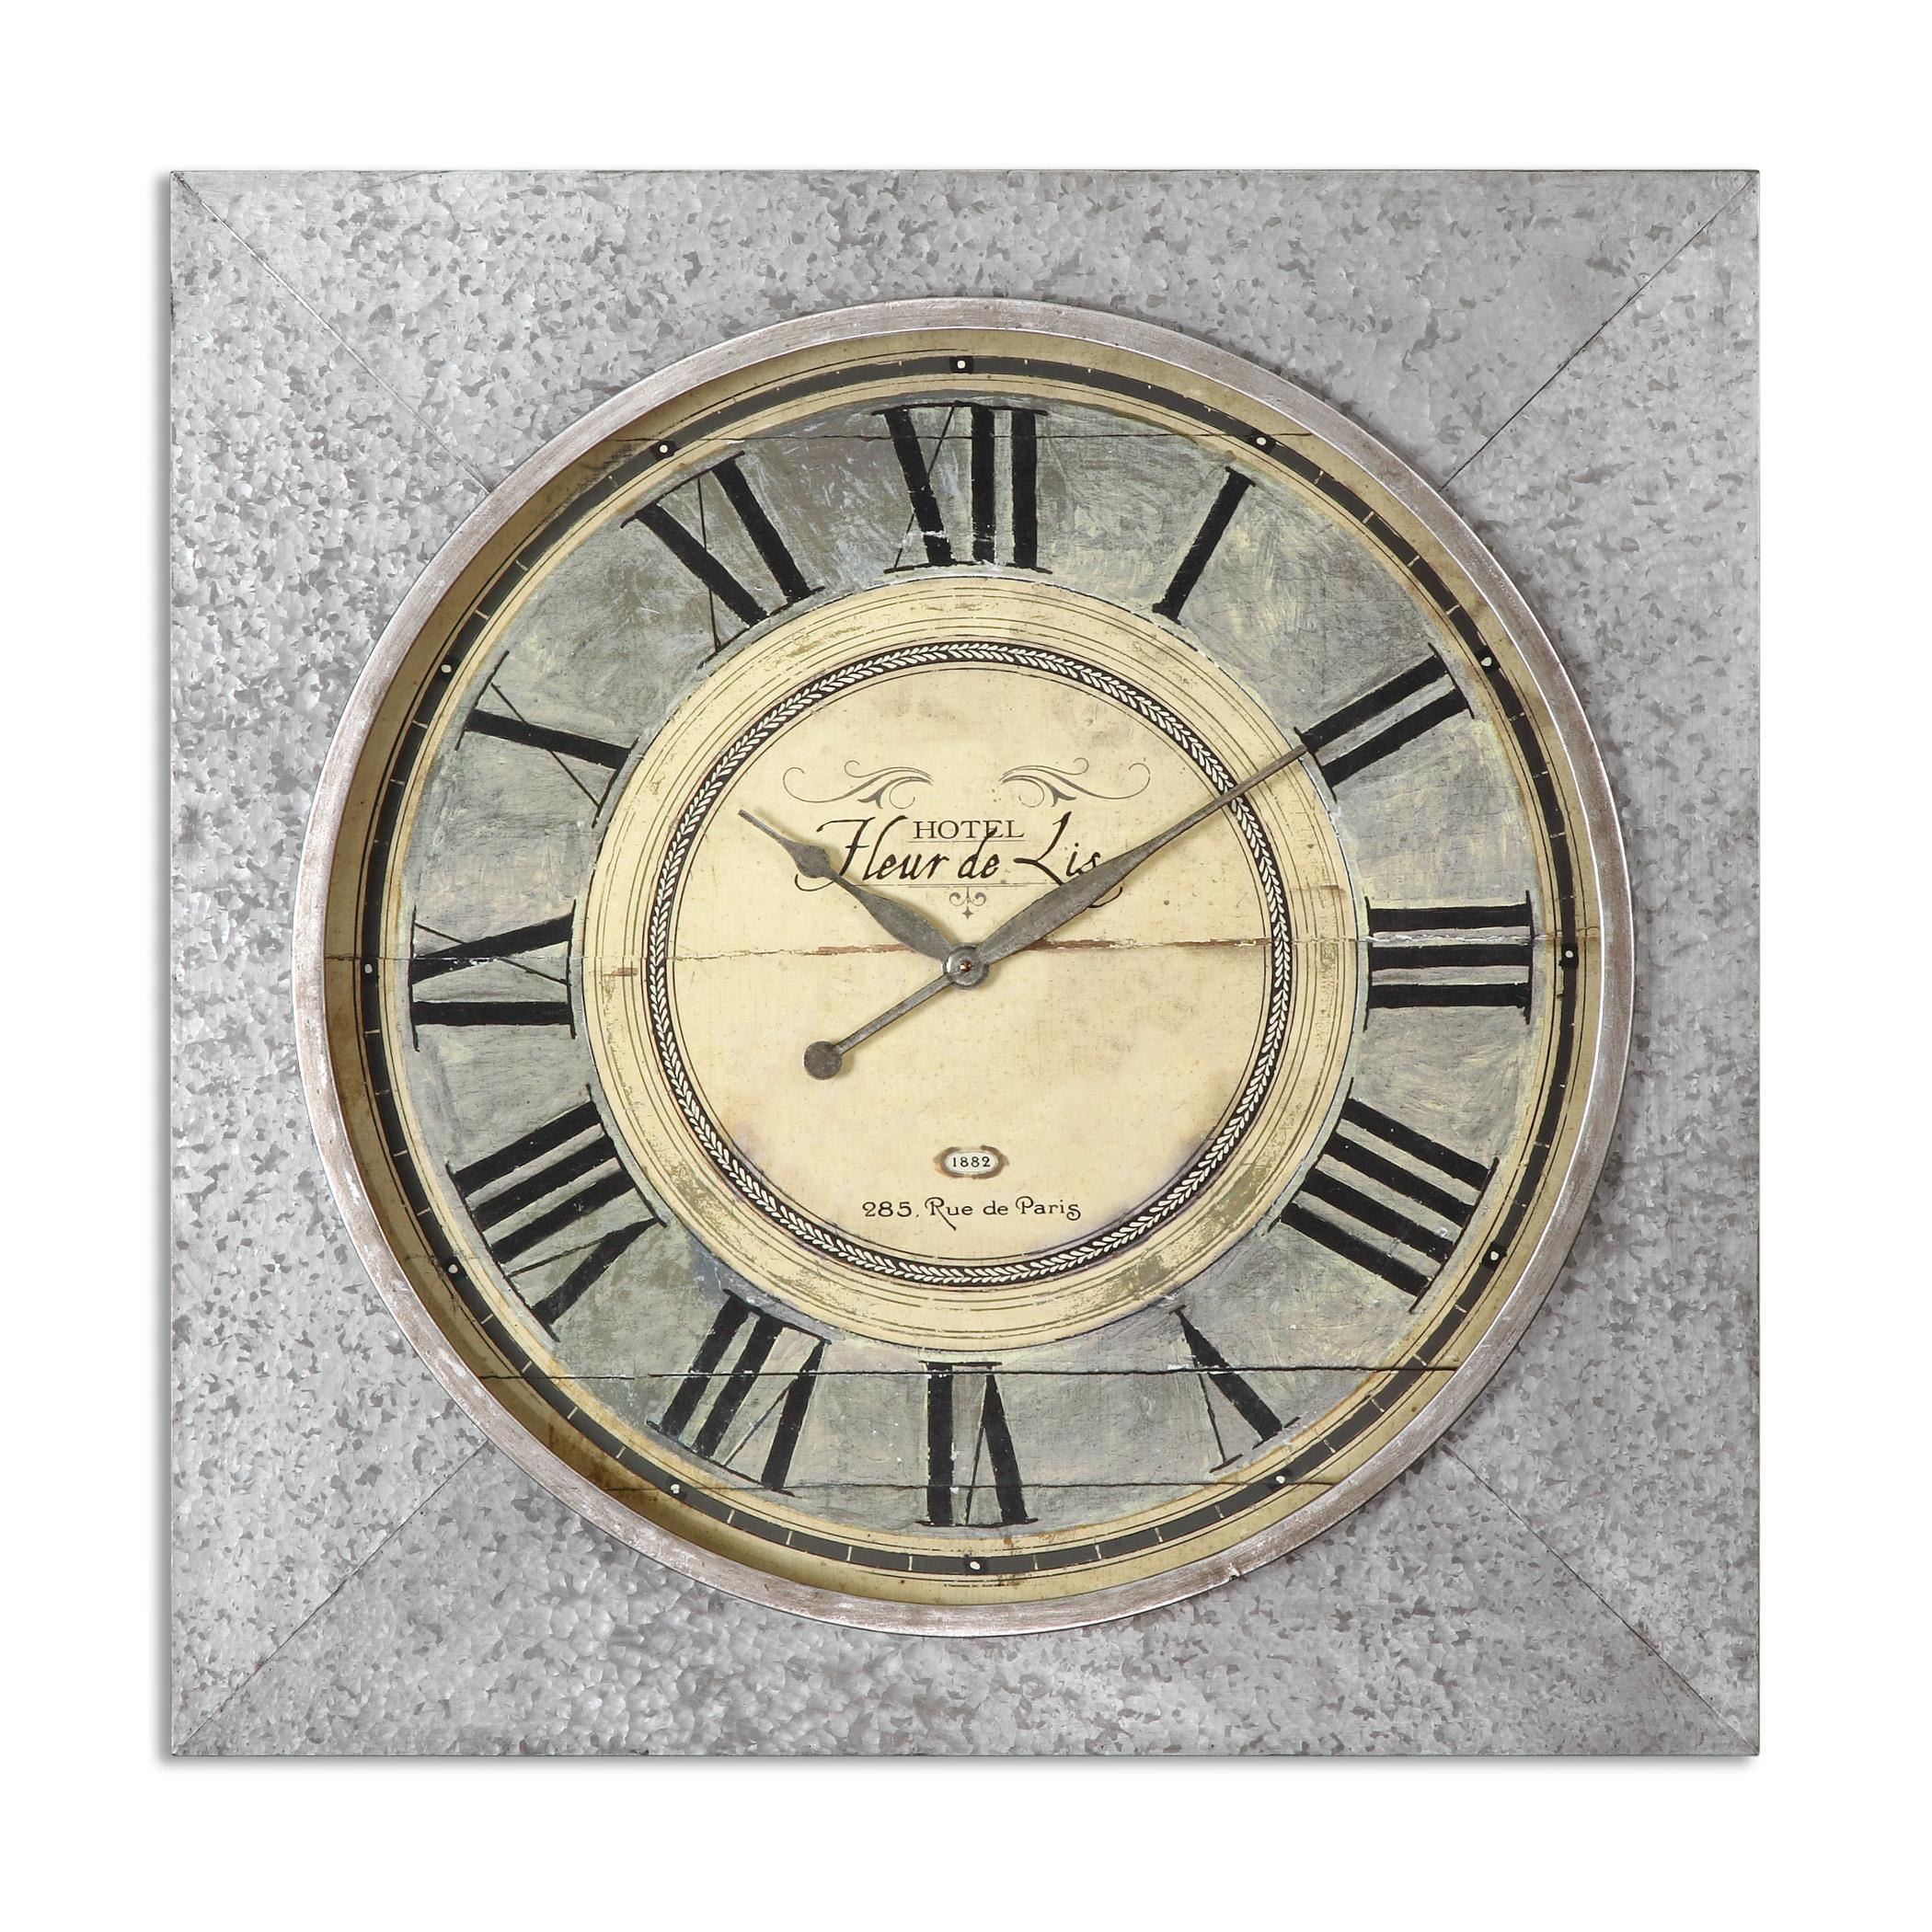 Uttermost Clocks Rue de Paris Square Wall Clock - Item Number: 06423